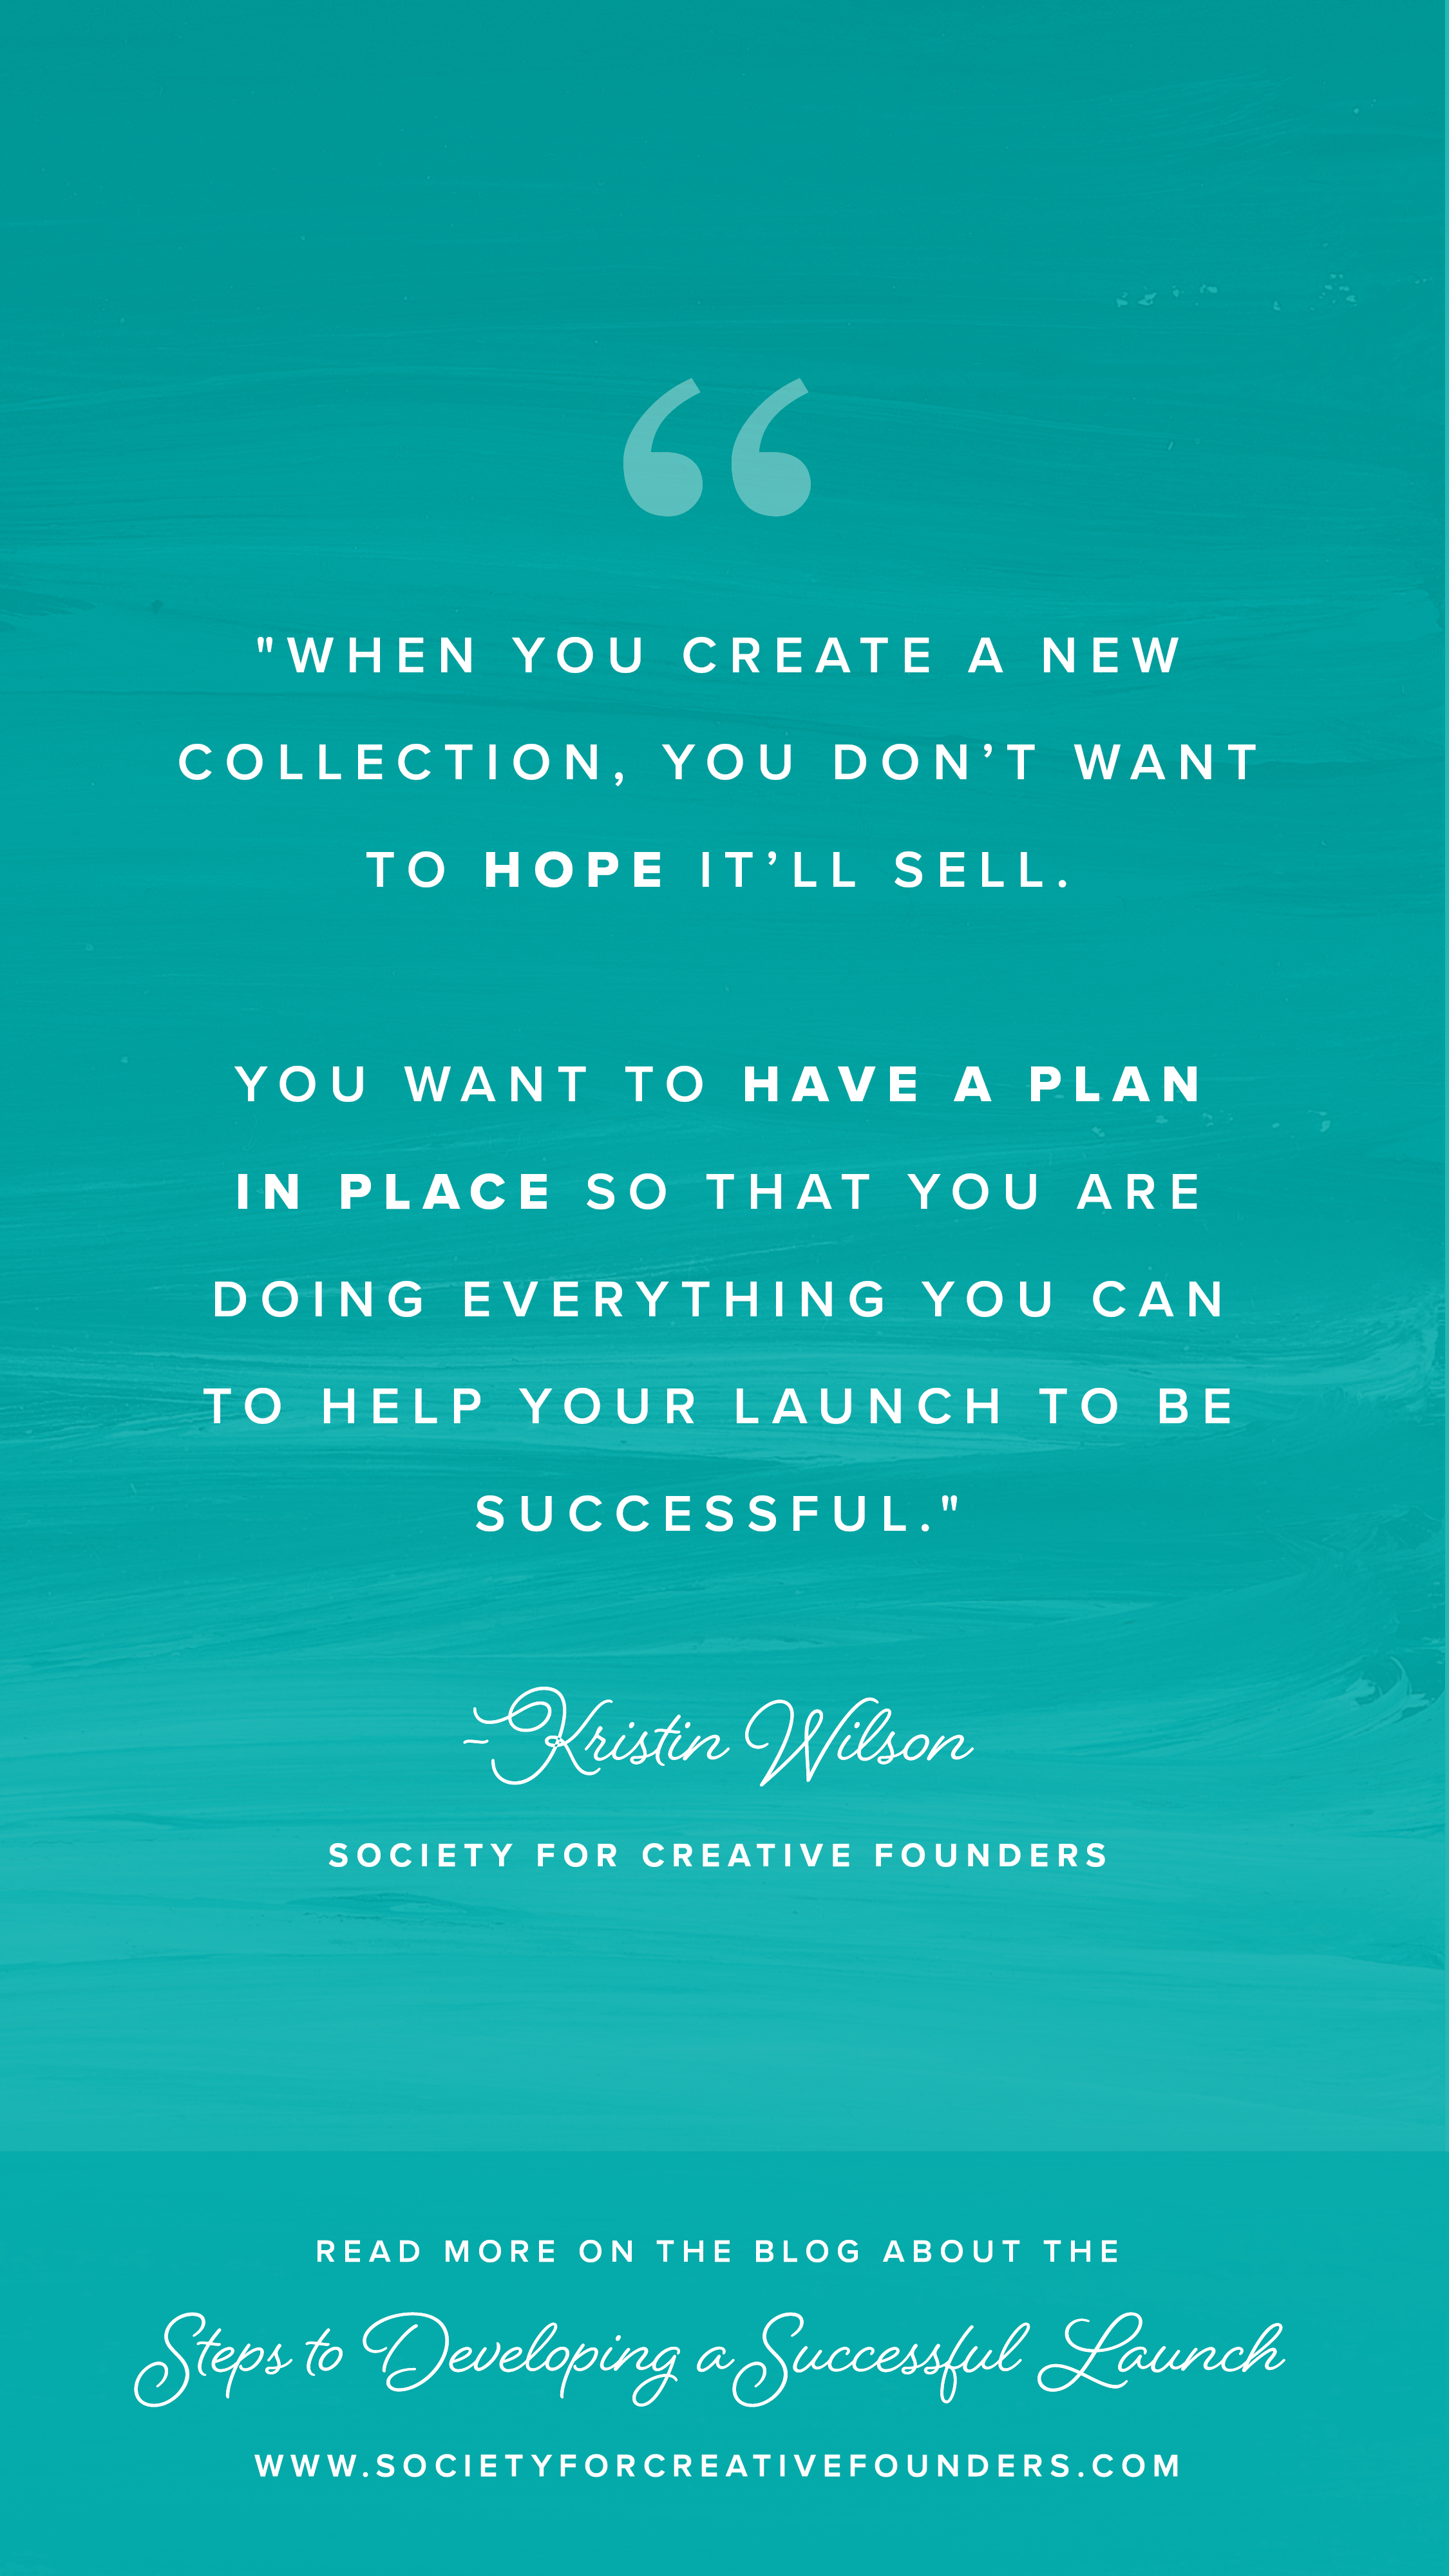 FREE GUIDE - How to create a product launch - Society for Creative Founders